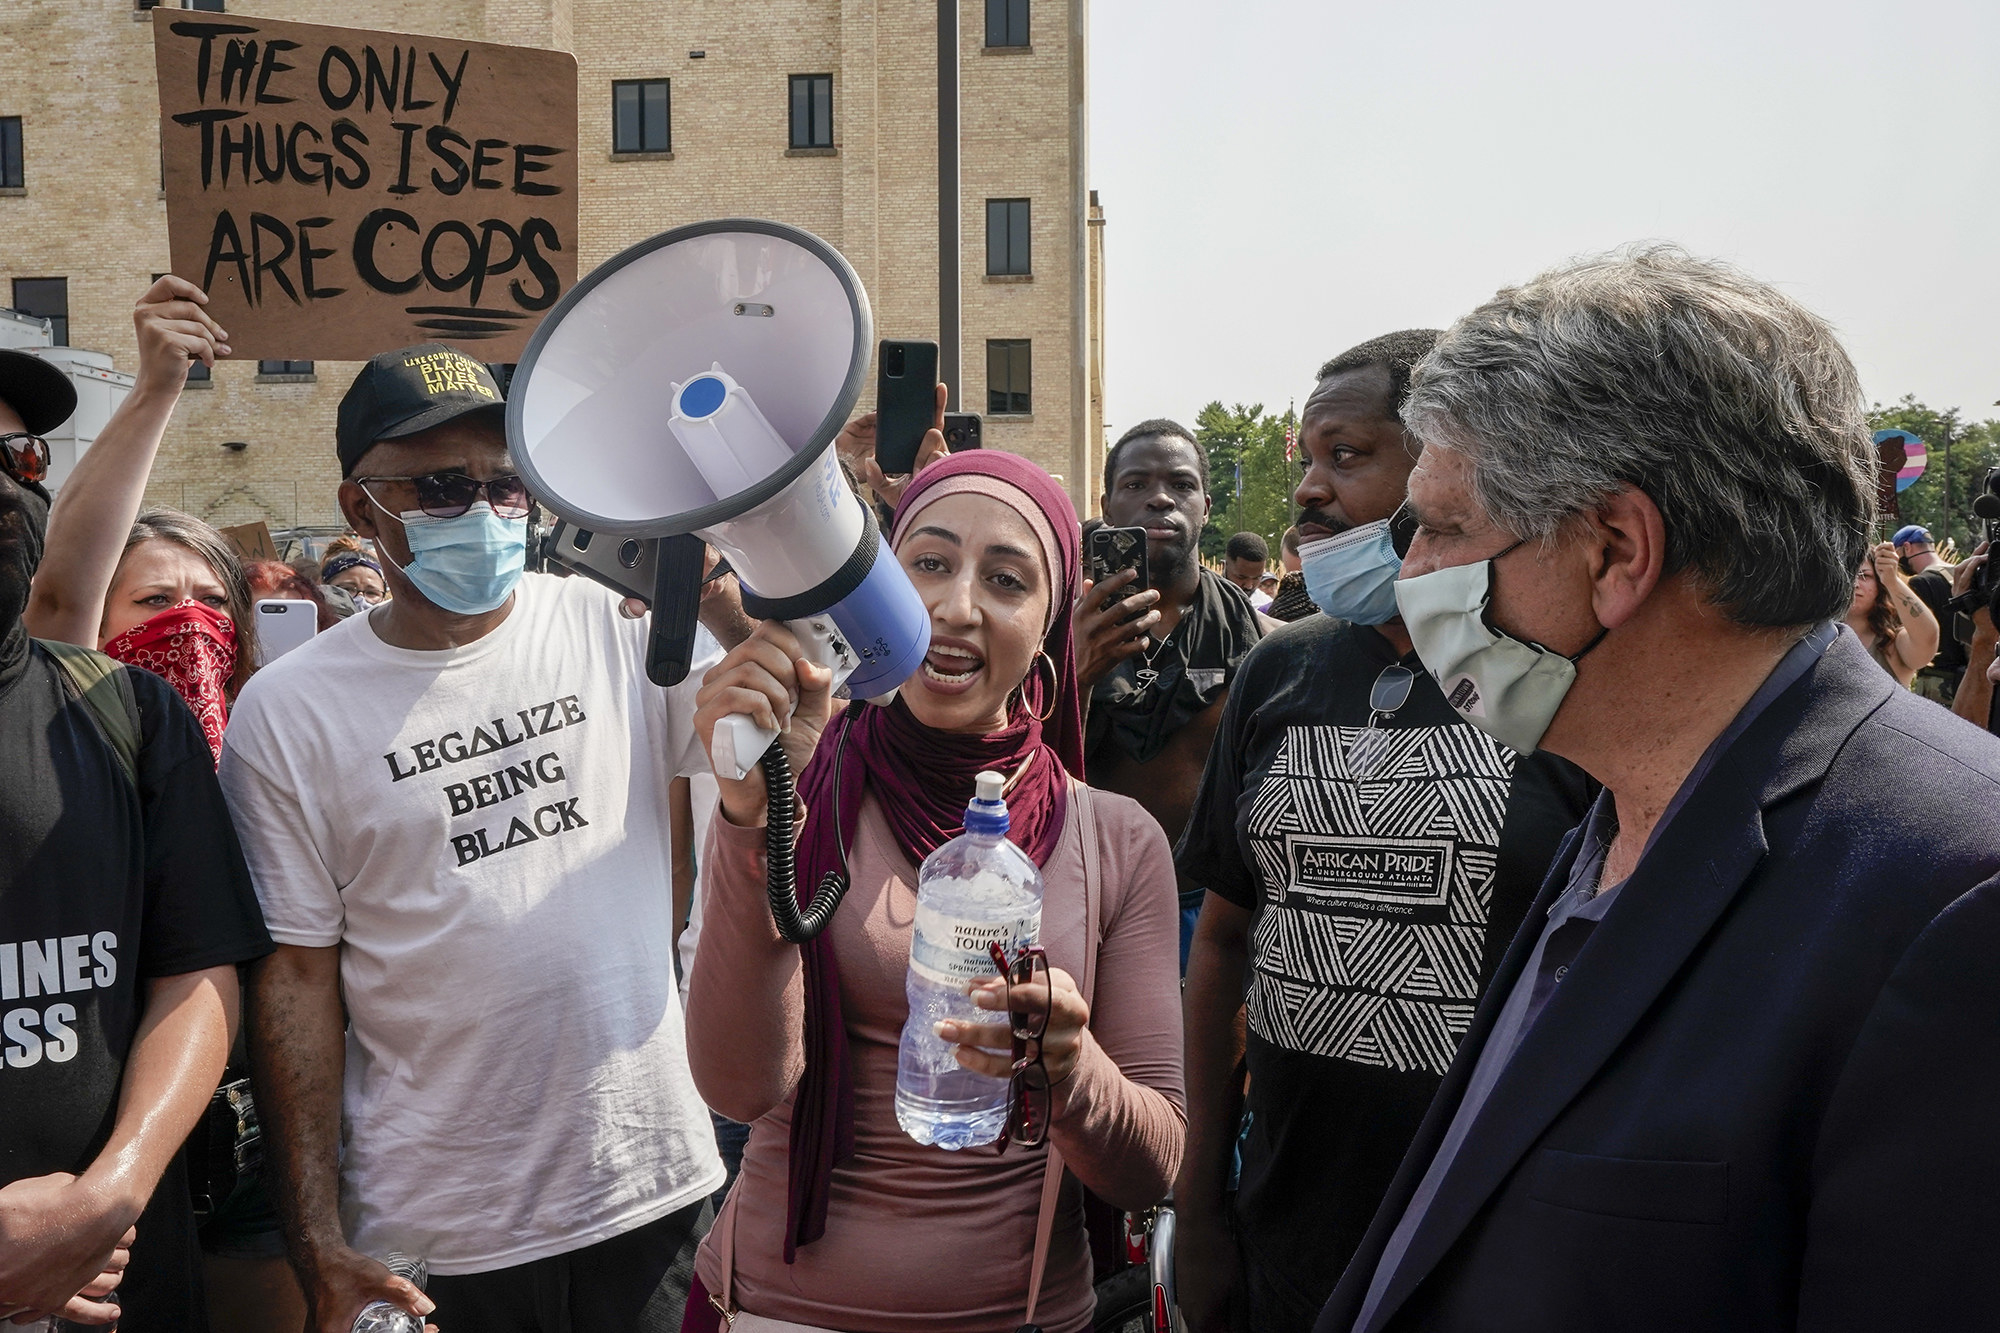 A woman with a pink hijab speaks on a megaphone amidst a crowd